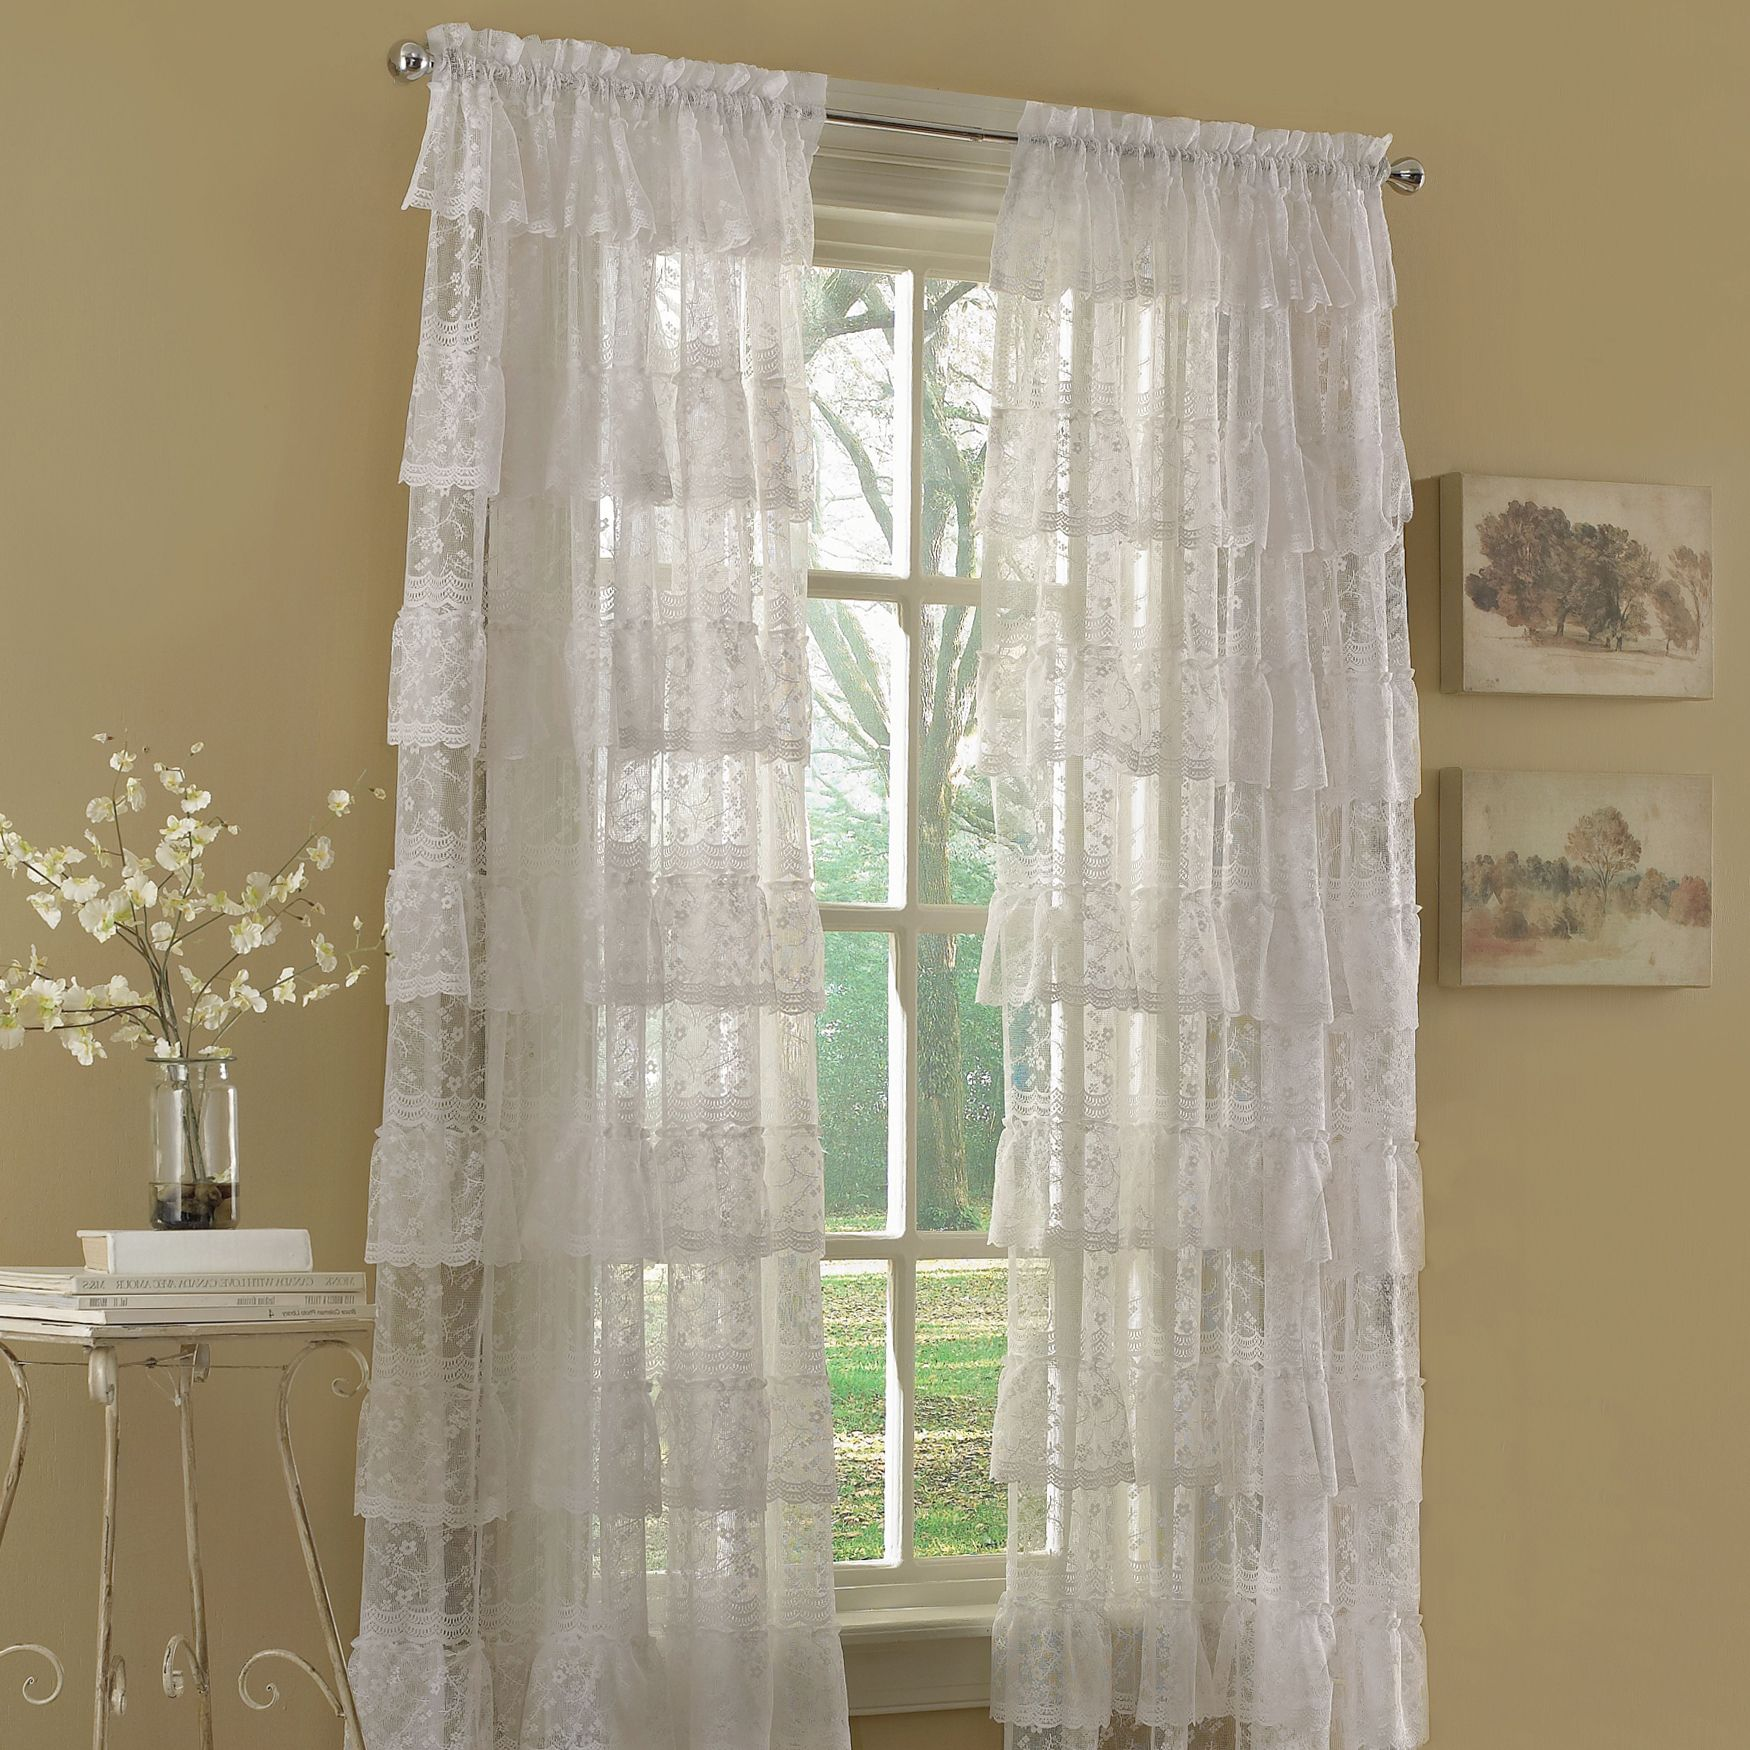 Priscilla Bridal Lace Panels Curtains Drapes